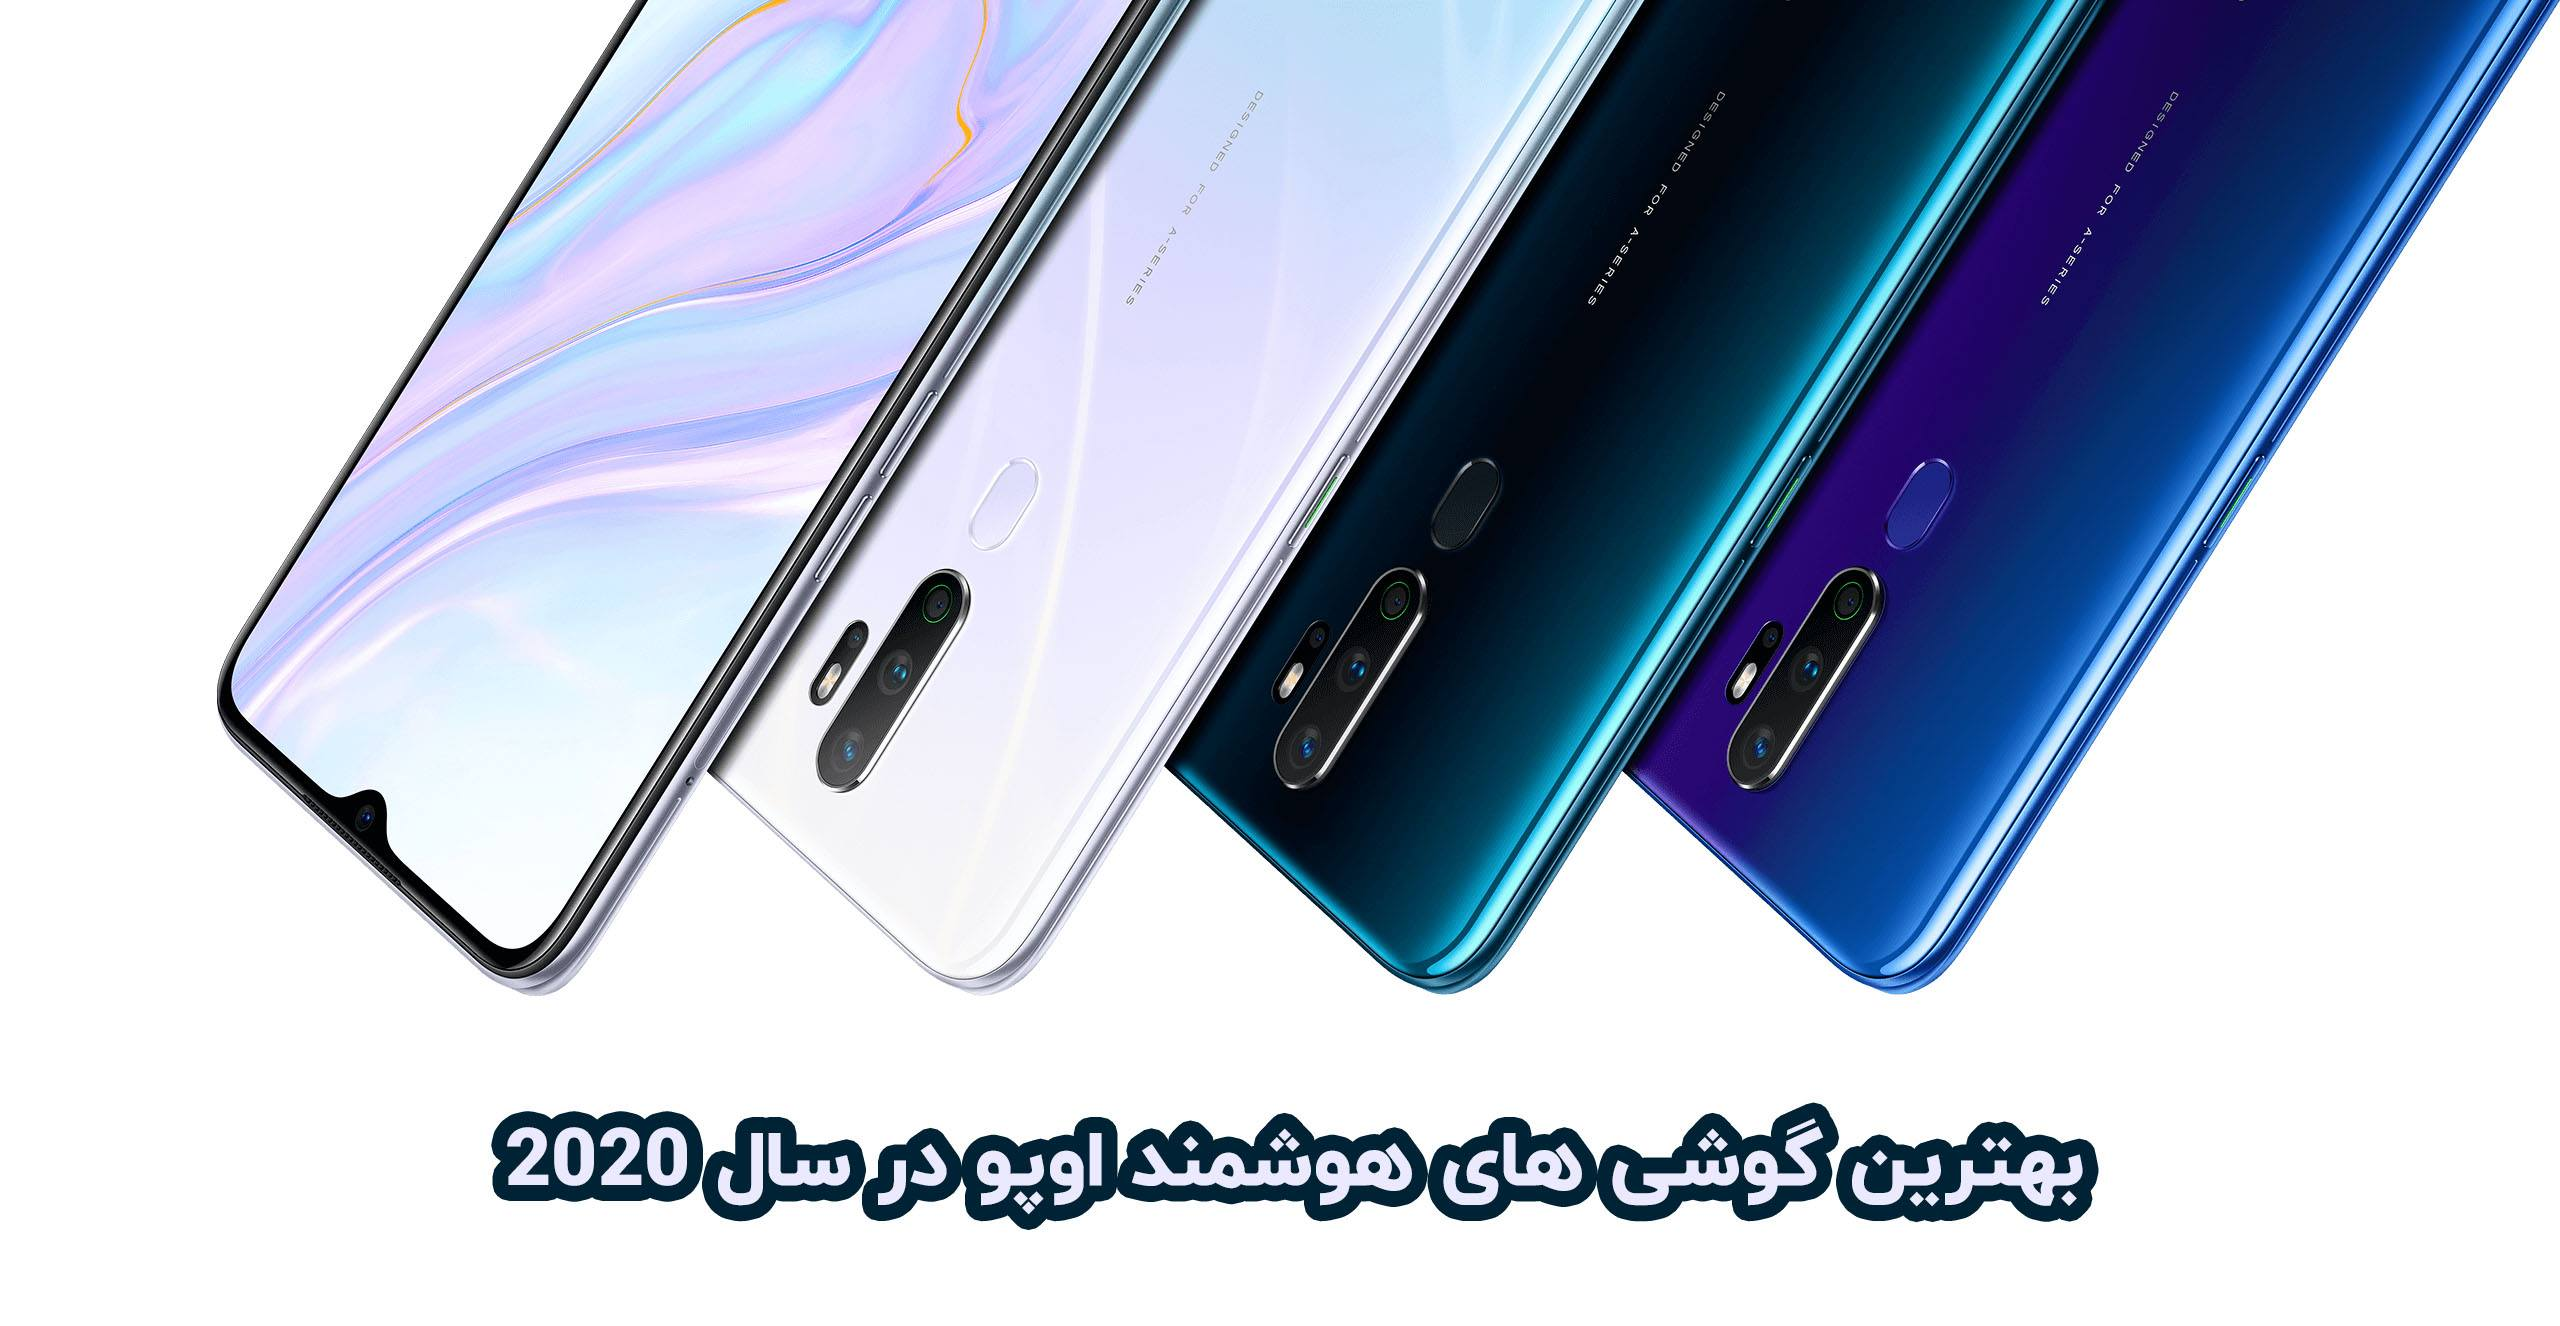 Best Oppo phones of 2020